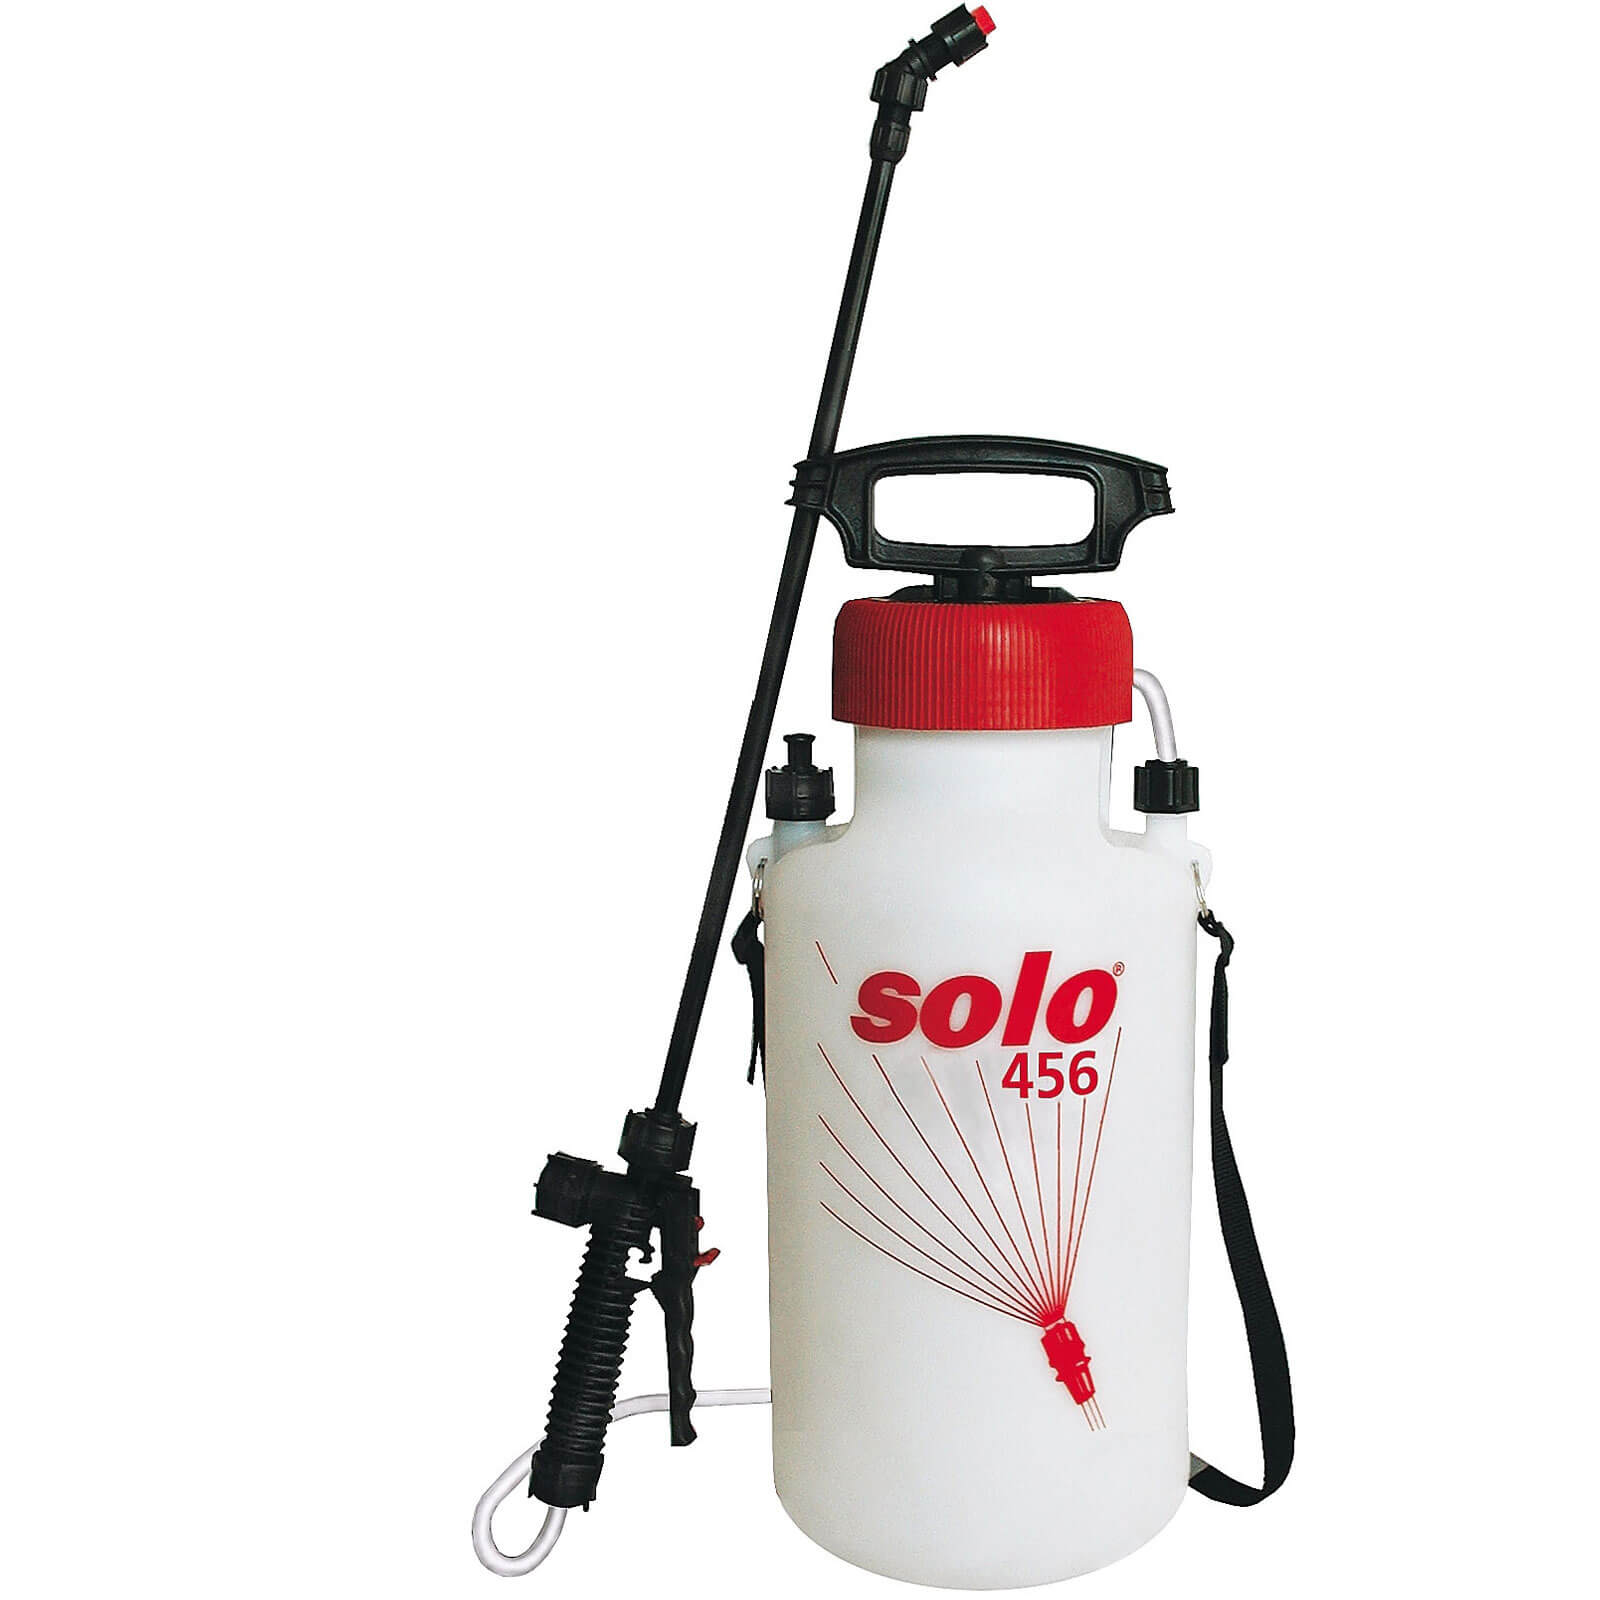 Solo 456 Chemical and Water Pressure Sprayer 7.5l